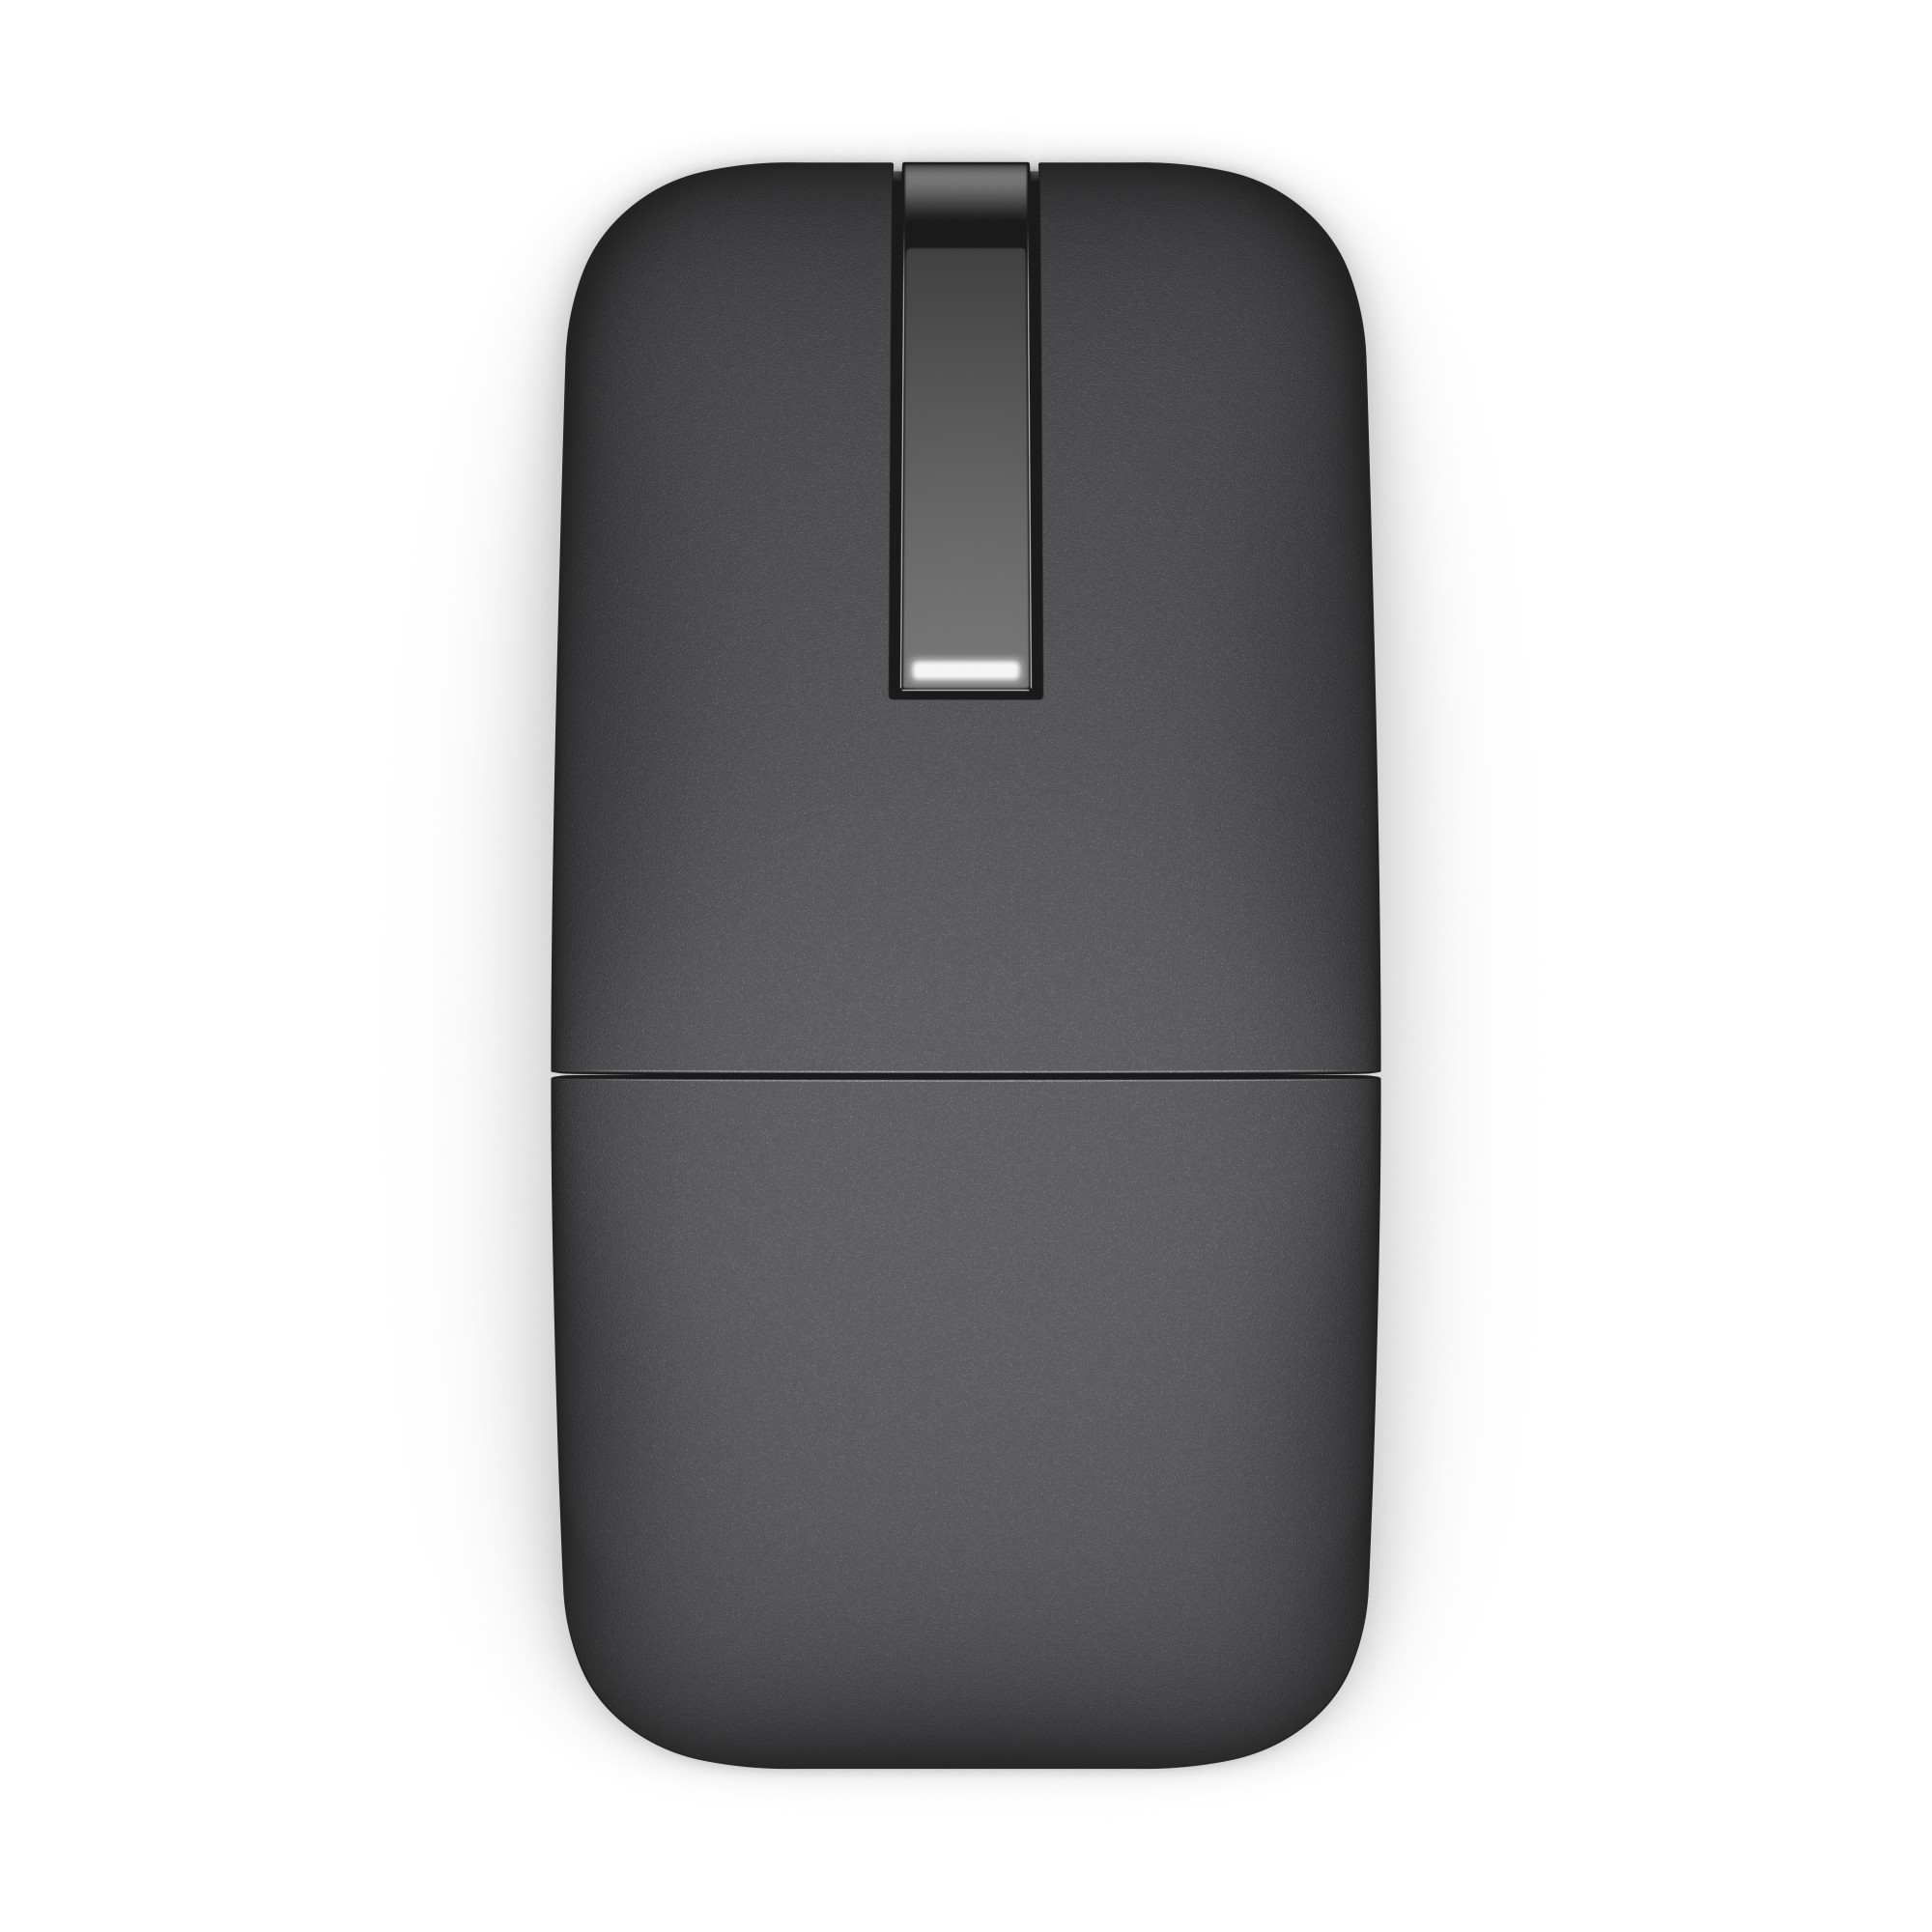 1aec2995a82 DELL Bluetooth Mouse-WM615